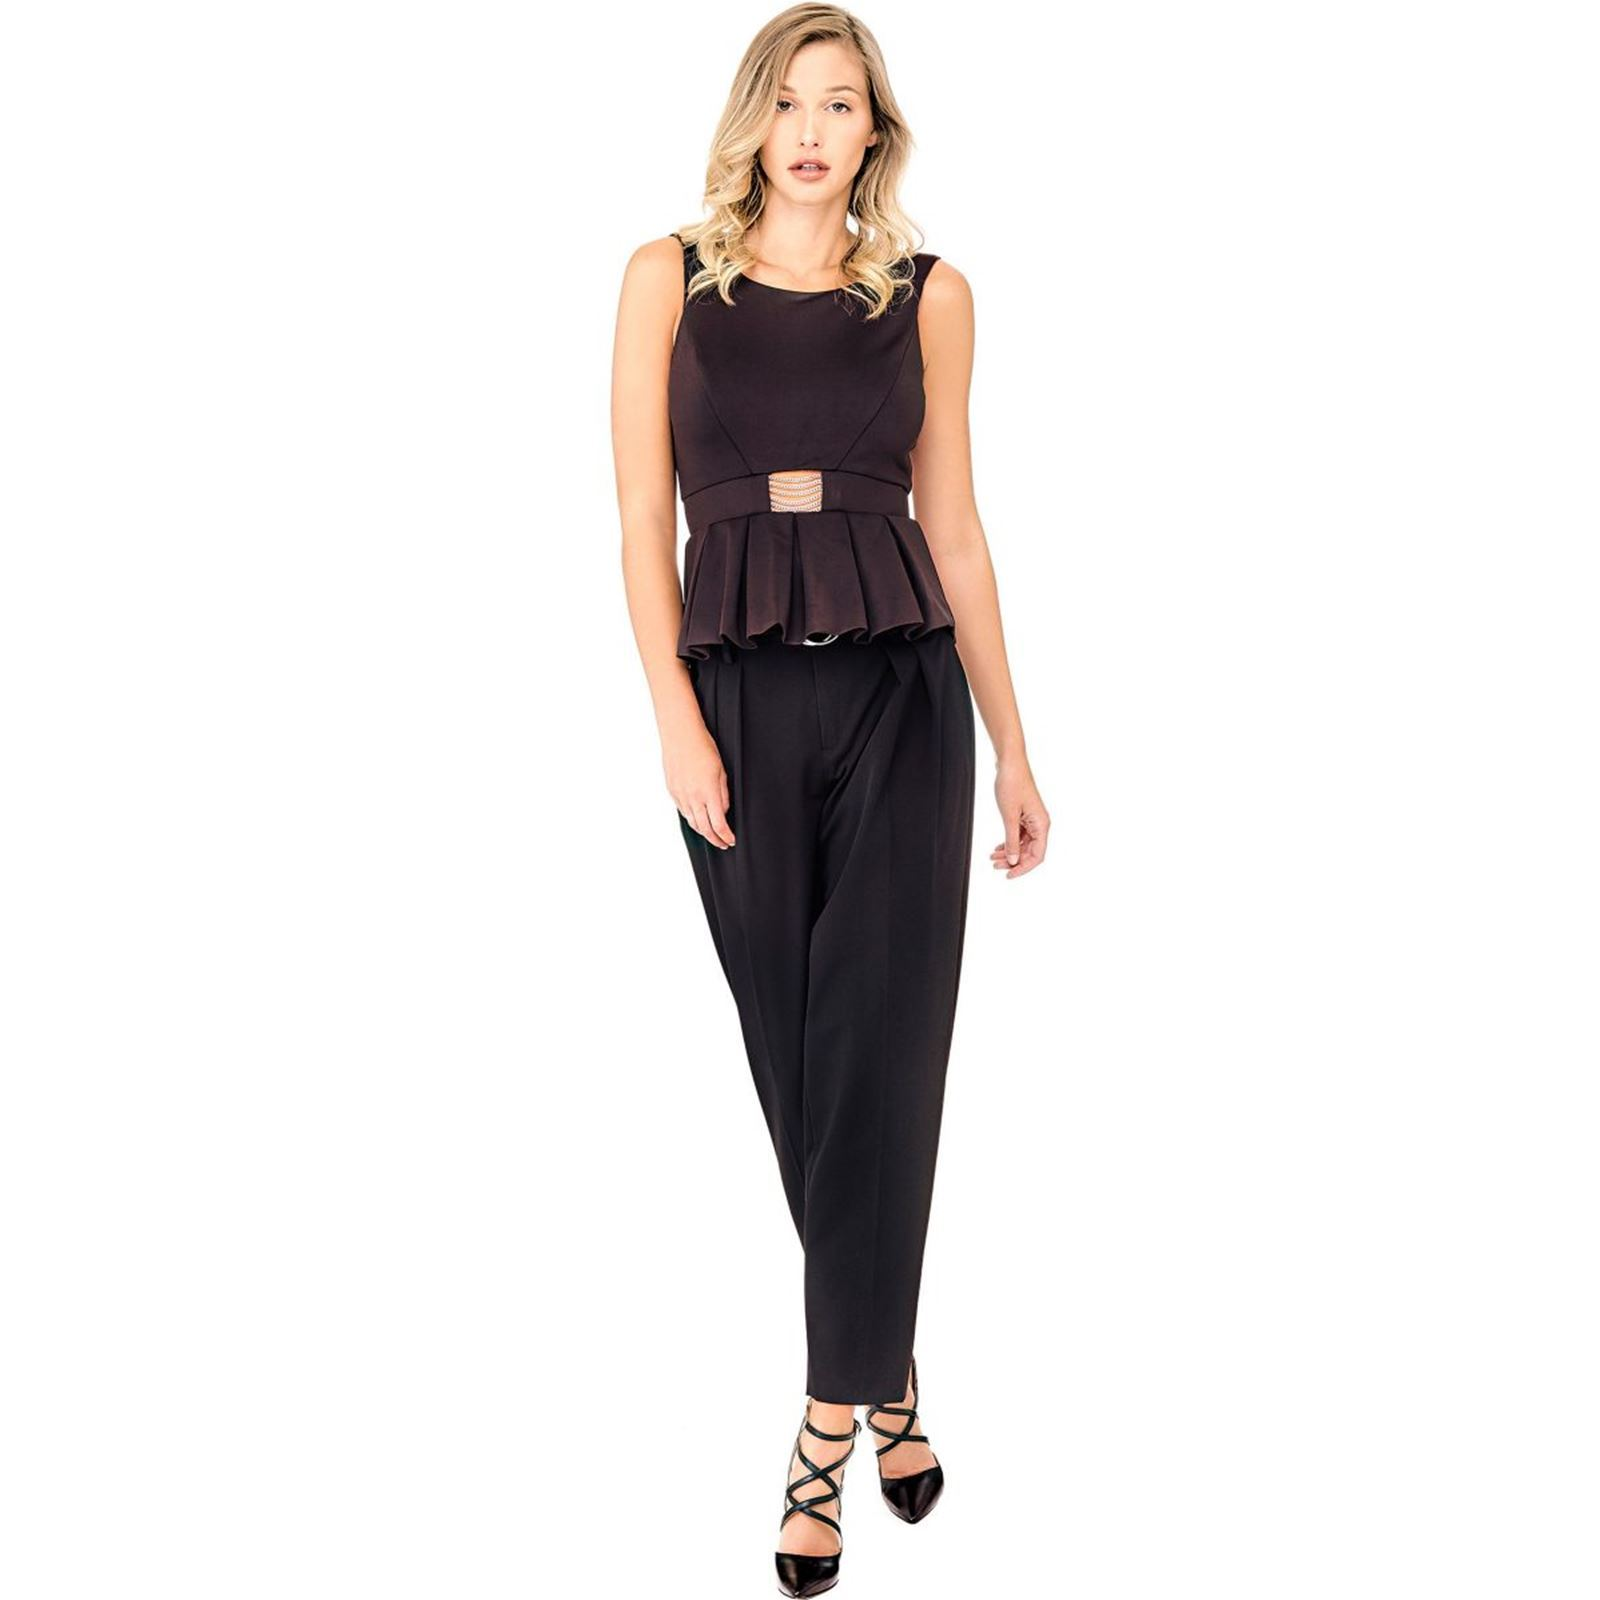 Marciano a Detail ChaineNoir Los Top V Femme Angeles f7Ybgvy6